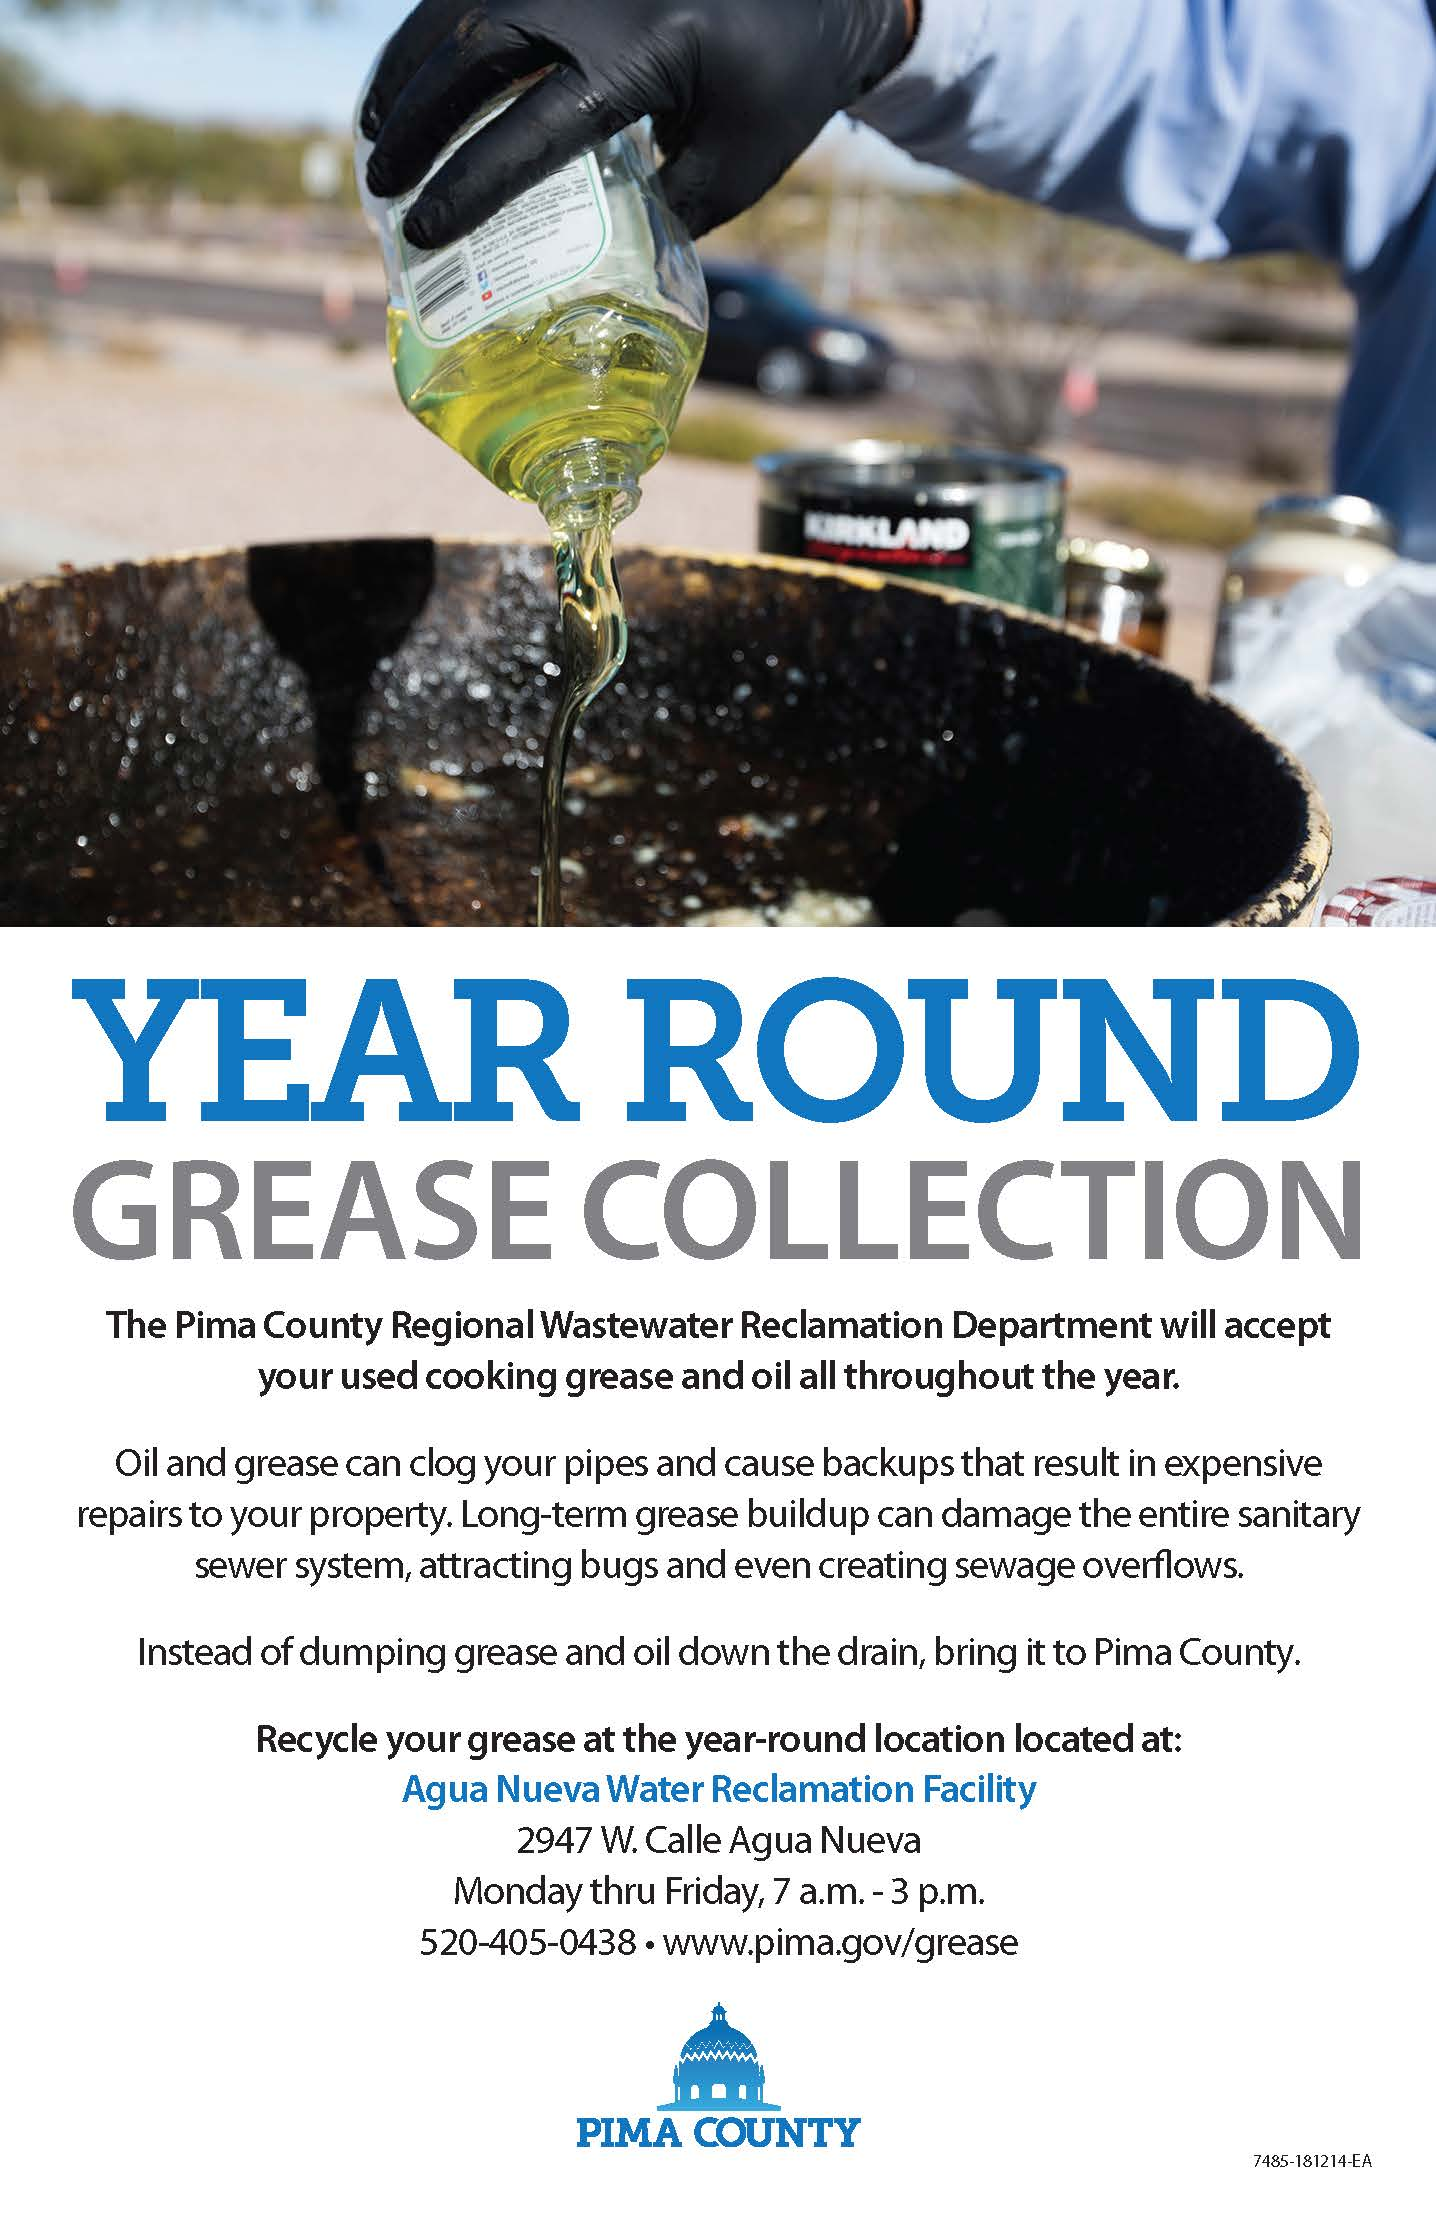 Year Round Grease Collection (1)